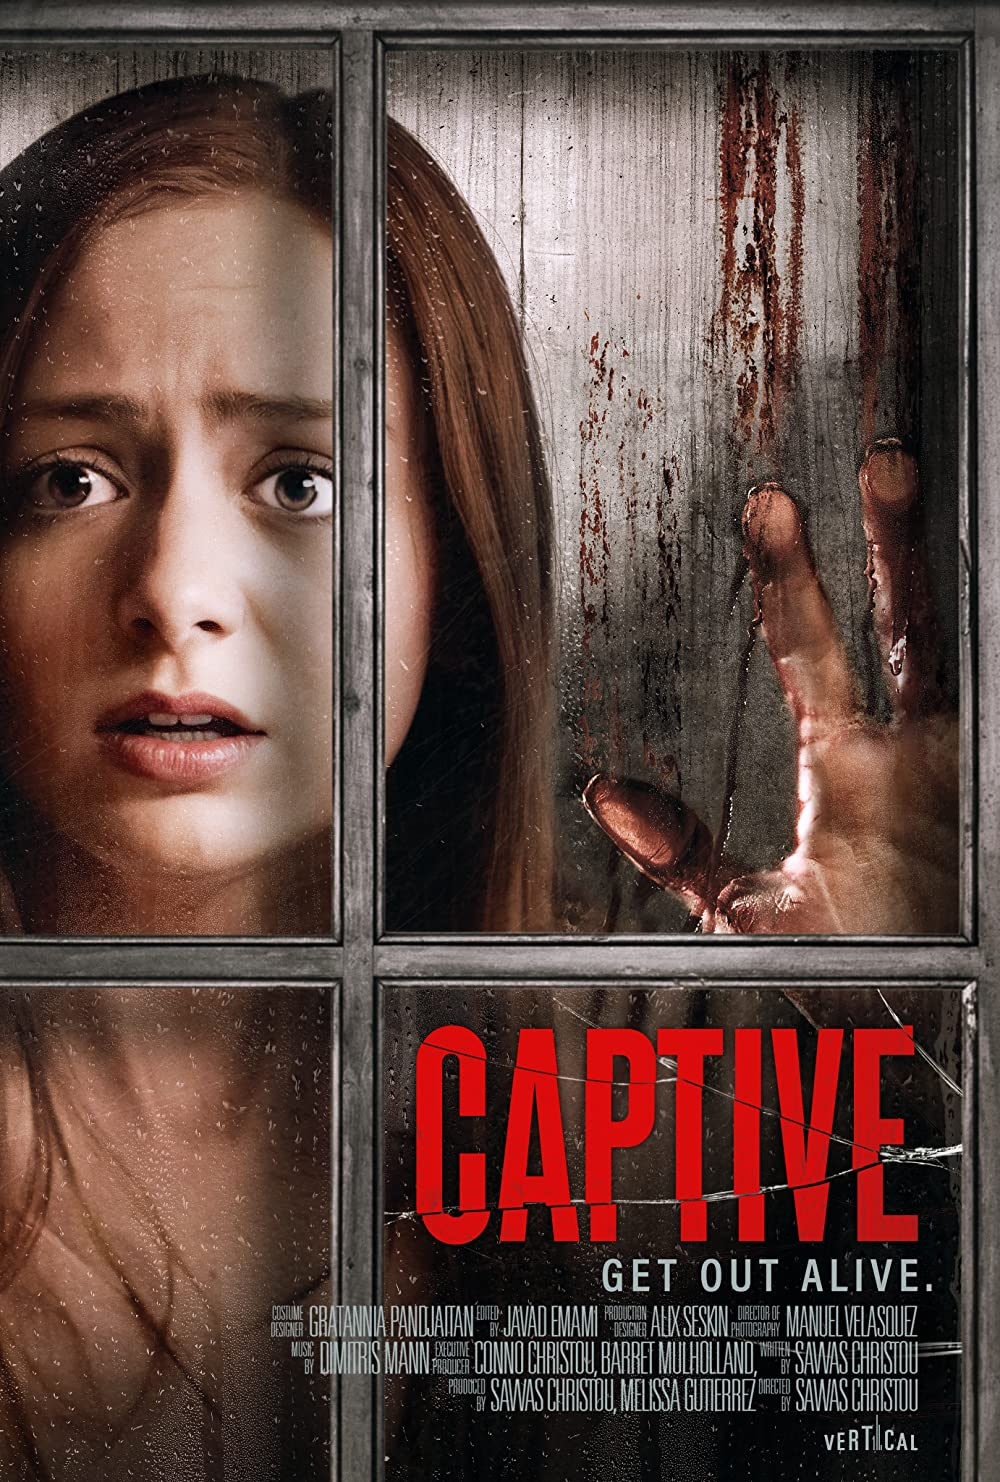 Captive 2020 English Full Movie 1080p HDRip 1.4GB Download